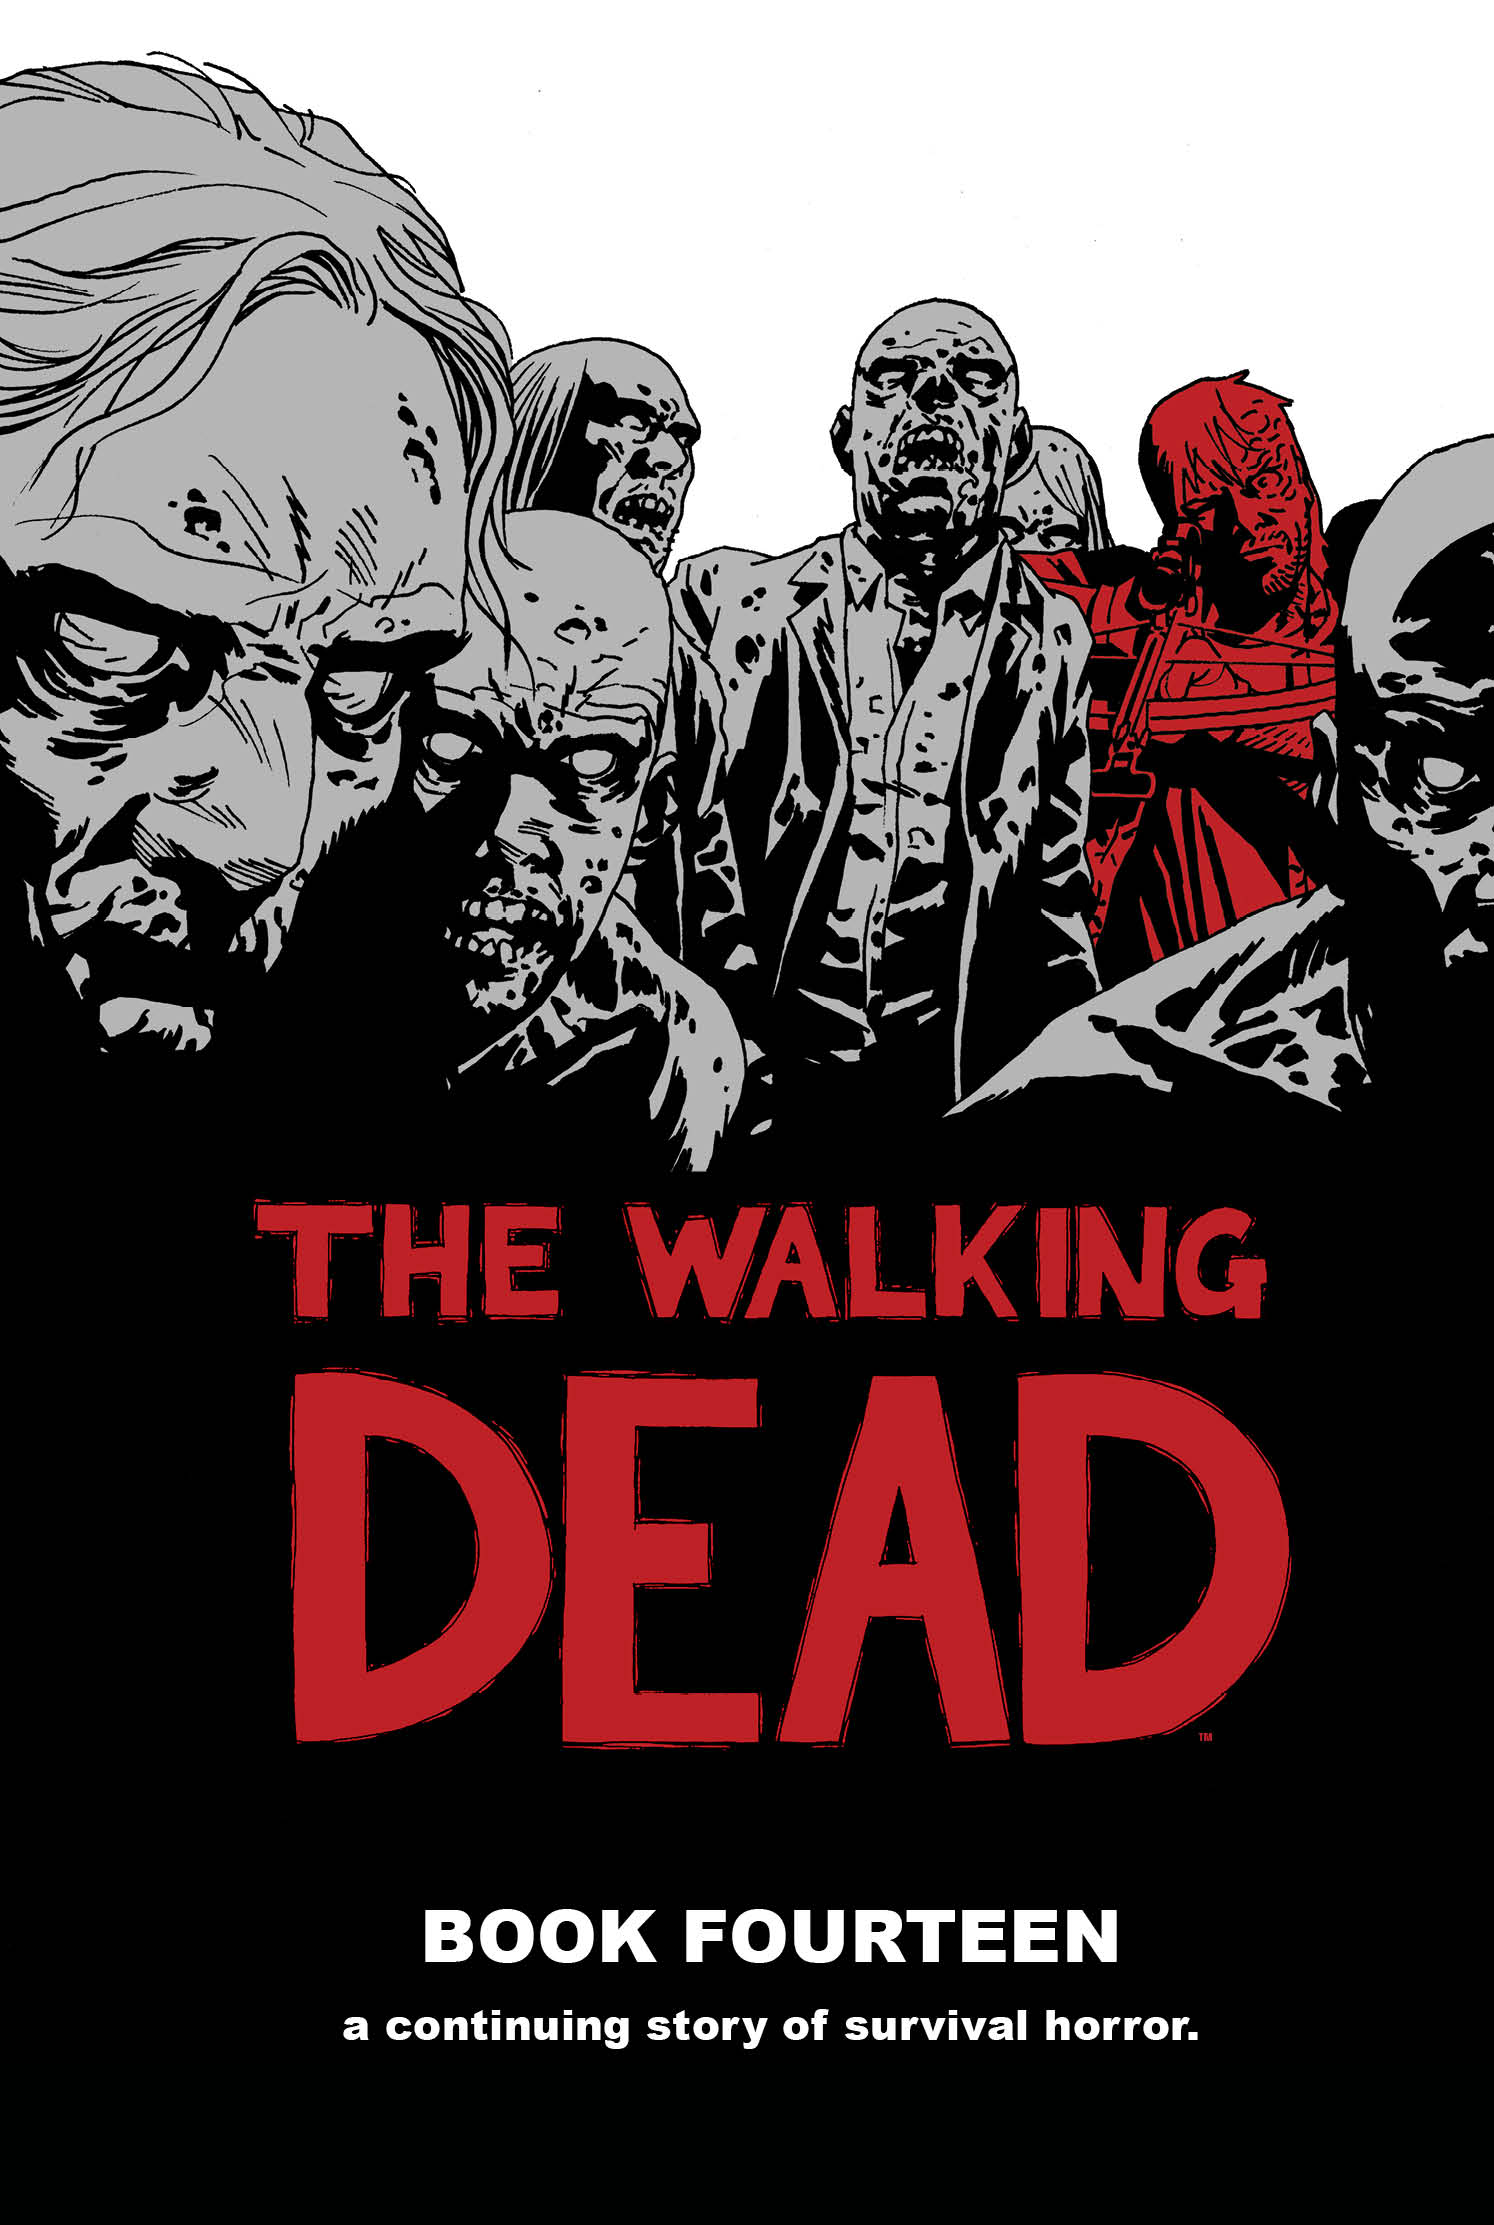 The Walking Dead: Book Fourteen